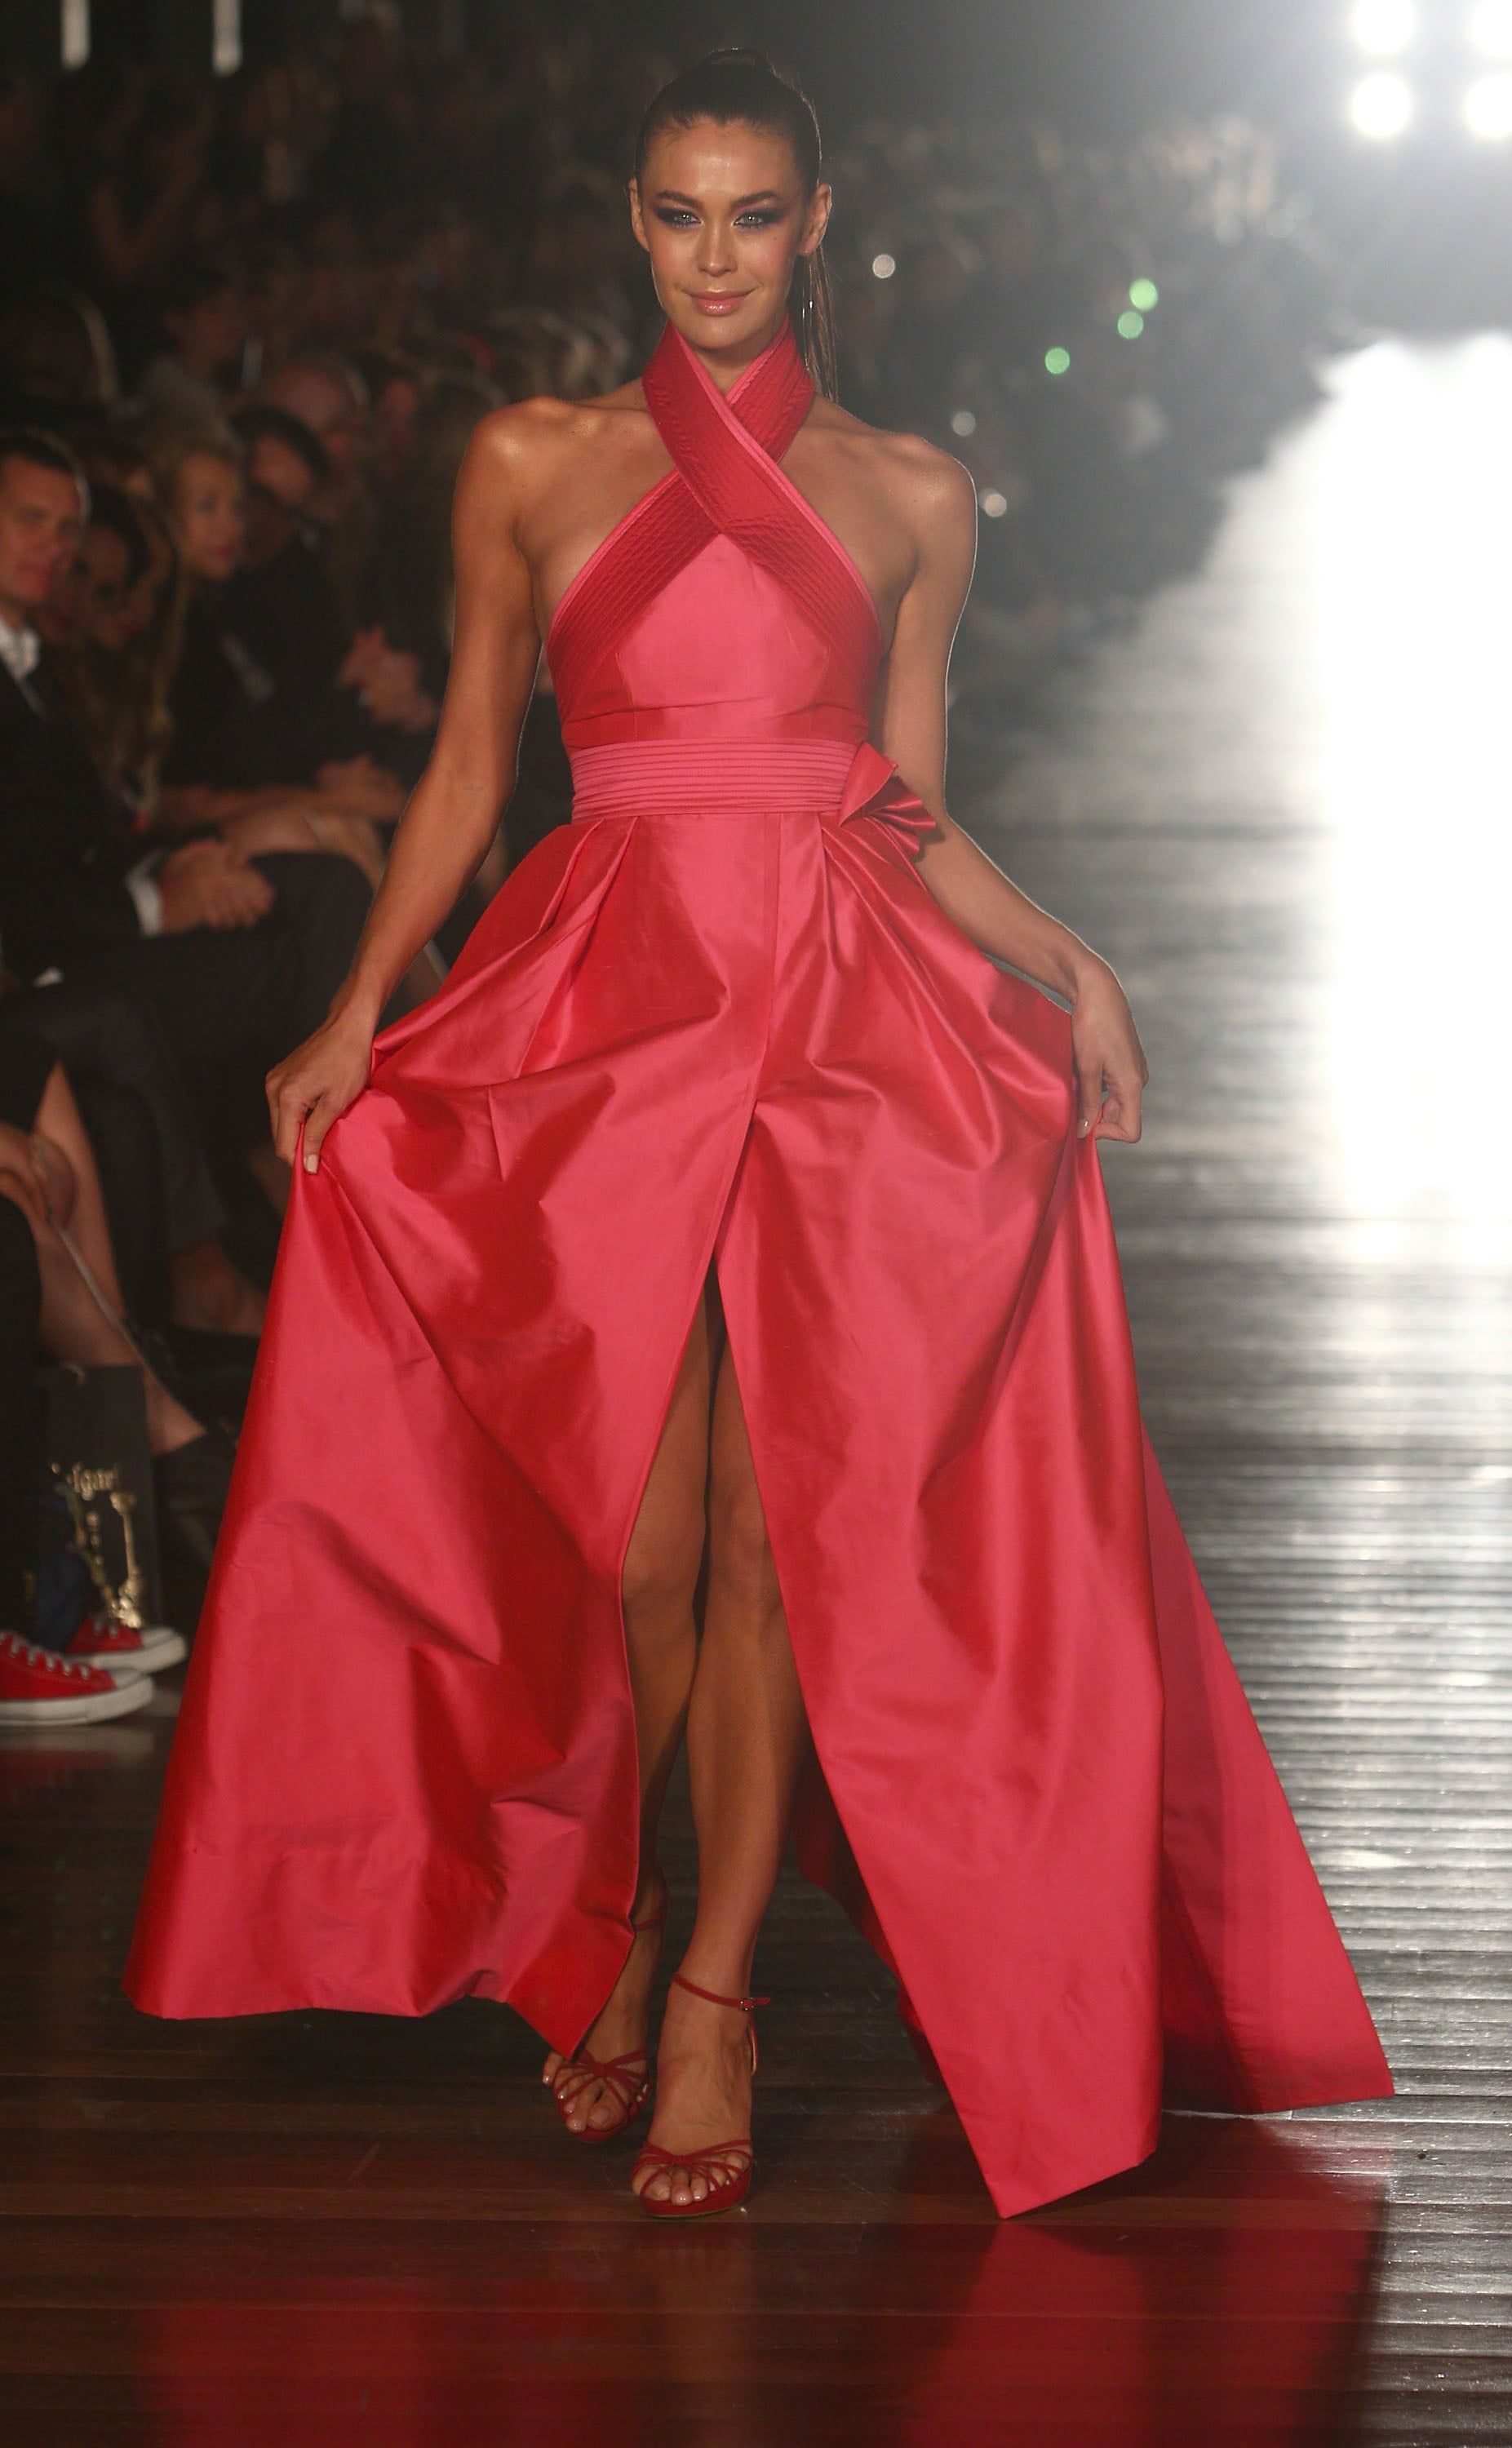 Megan Gale rocked this dramatic red gown down the runway for Alex Perry's LMFF show.